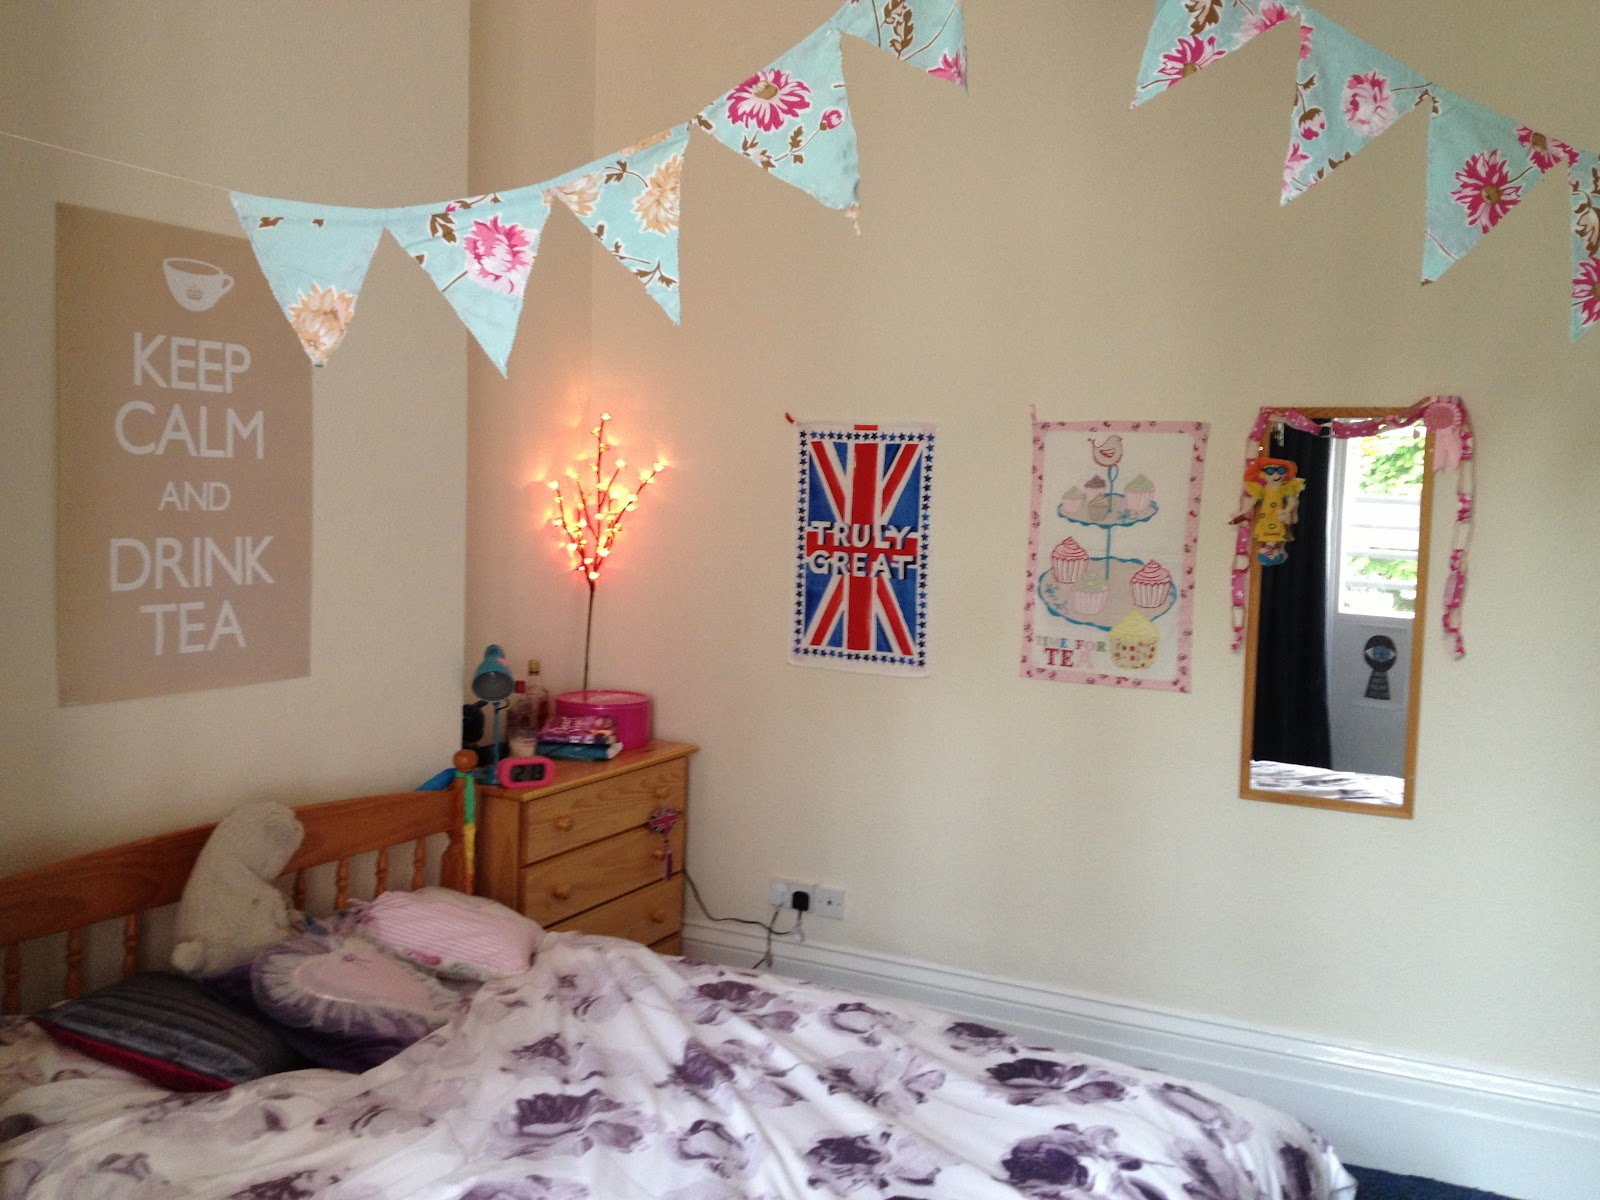 The Twenty Best Ways To Decorate Your Student Room At Uni: how can i decorate my house